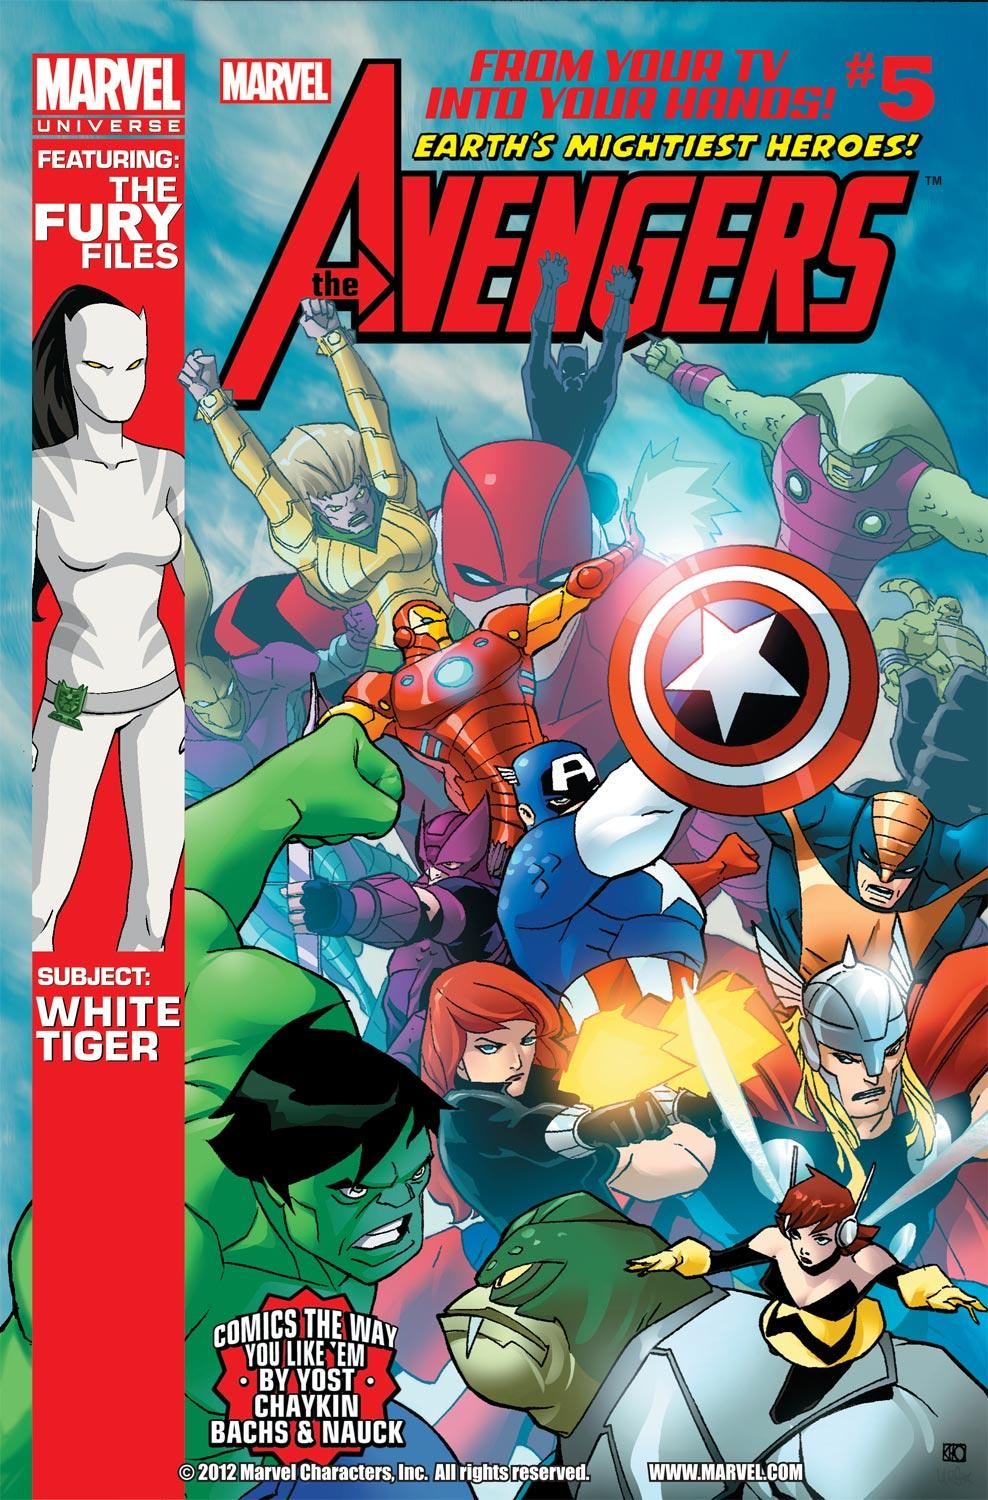 Marvel Universe Avengers: Earth's Mightiest Heroes (2012) #5